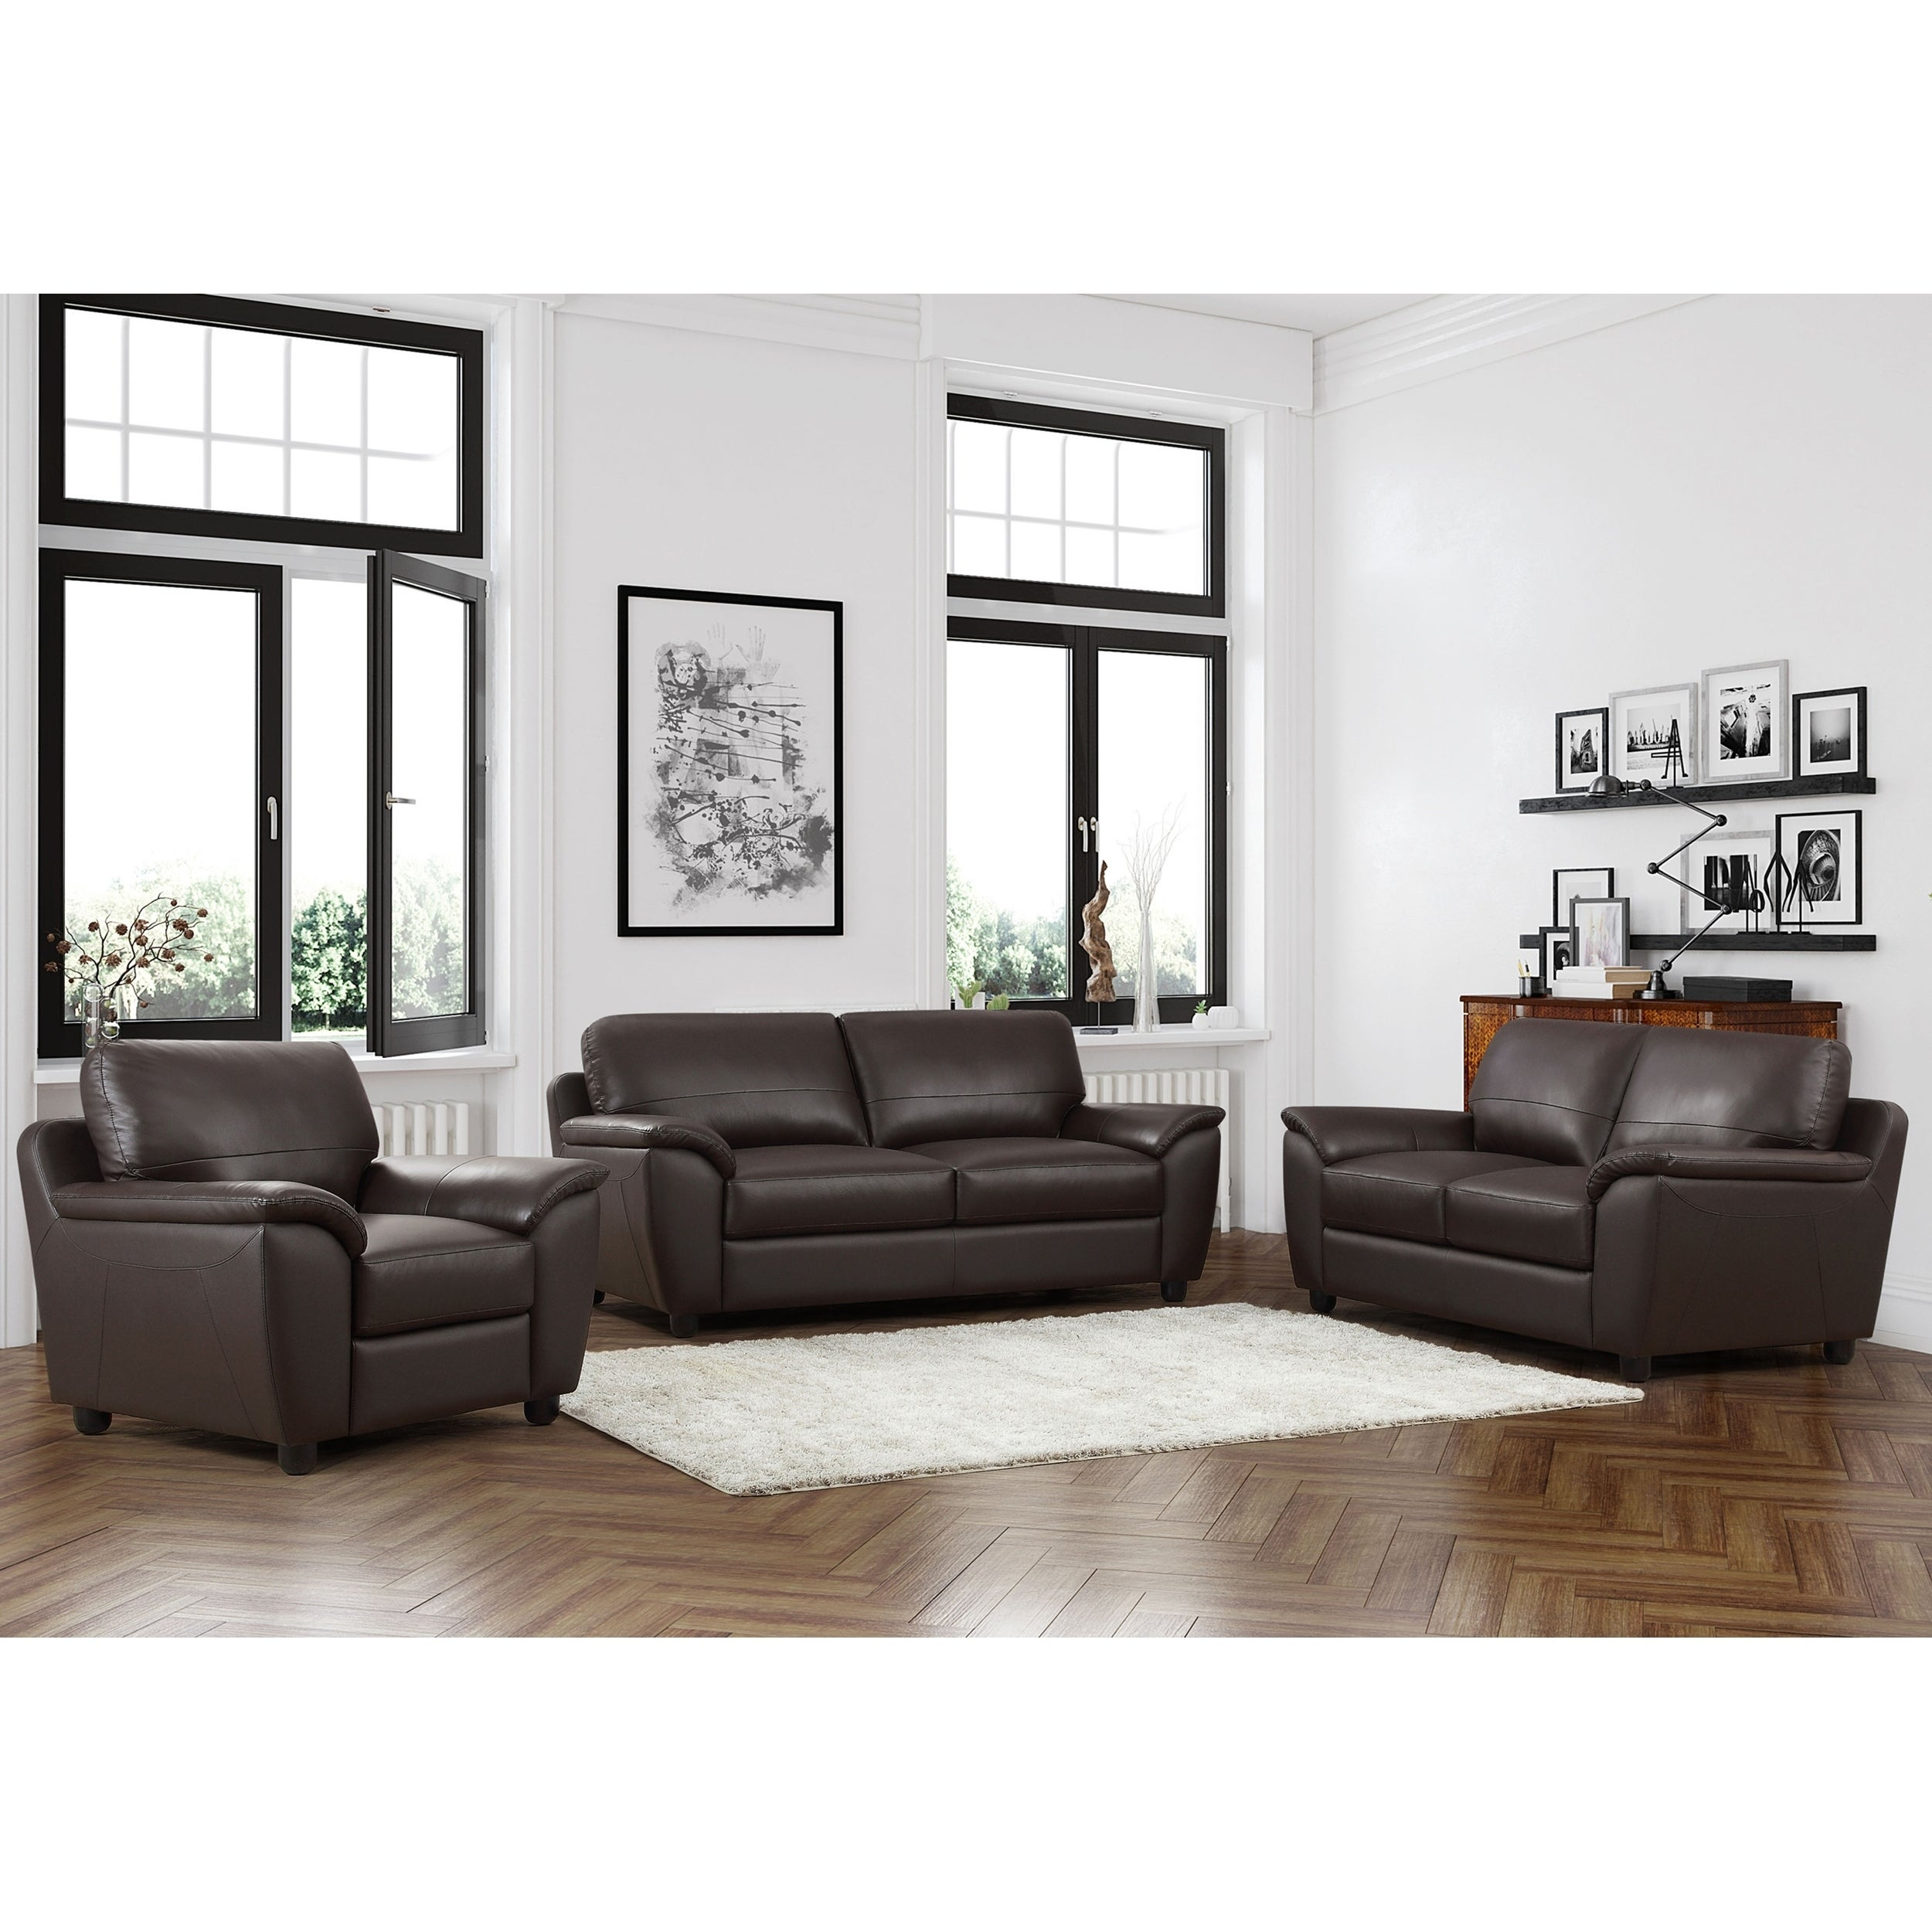 Abbyson Living Sedona 3-piece Premium Top-grain Leather Sofa, Loveseat and Armchair Set at Sears.com